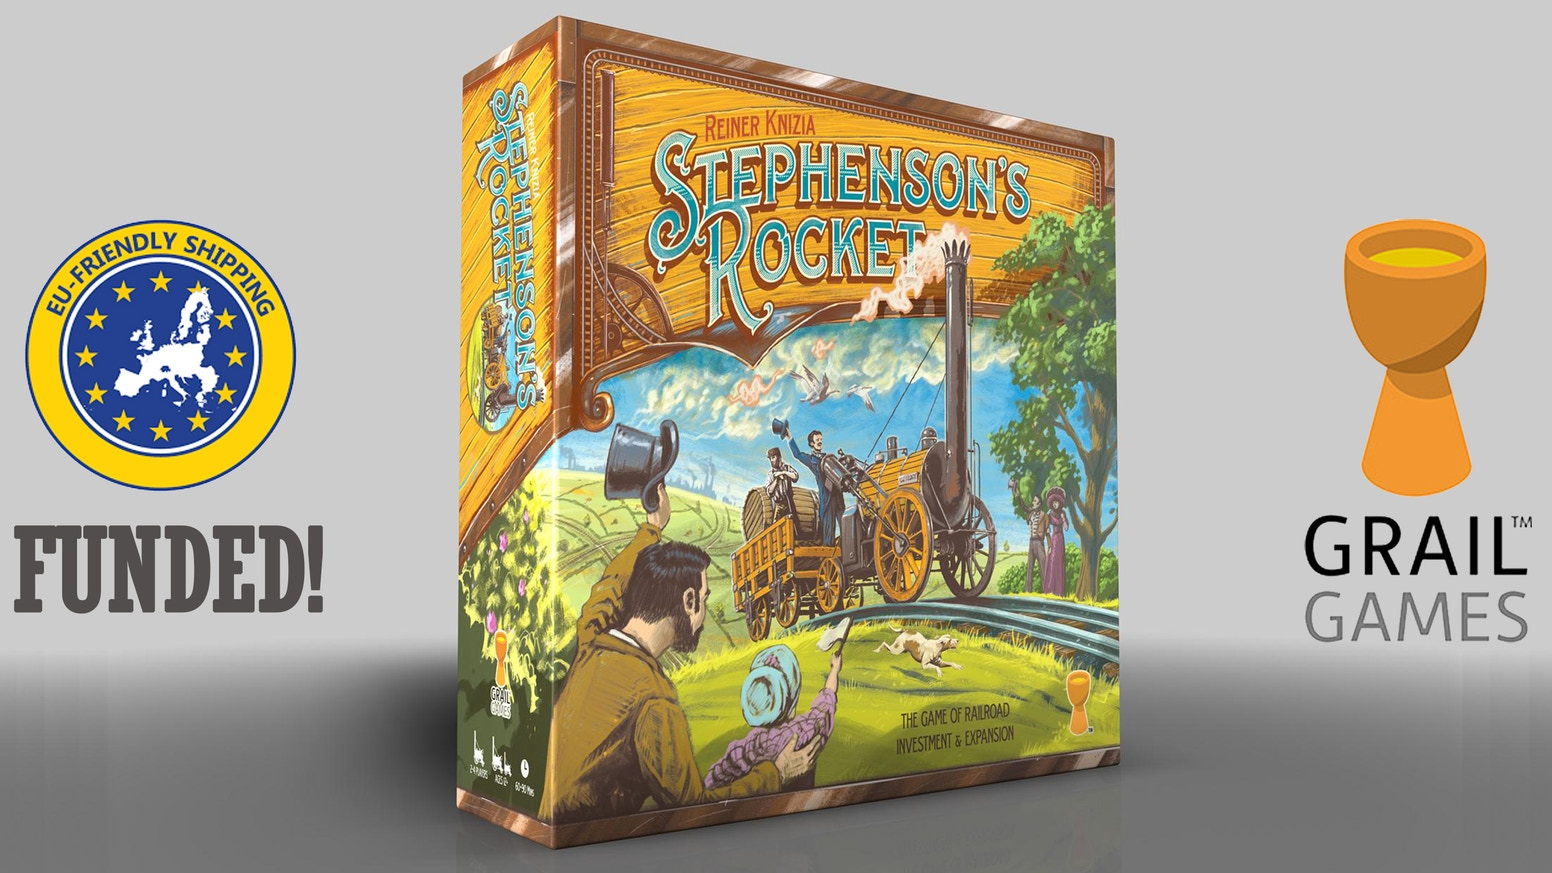 In 1999, Dr Reiner Knizia designed a classic game about a classic train. Now, with A+ illustrator Ian O'Toole, we're bringing it back!